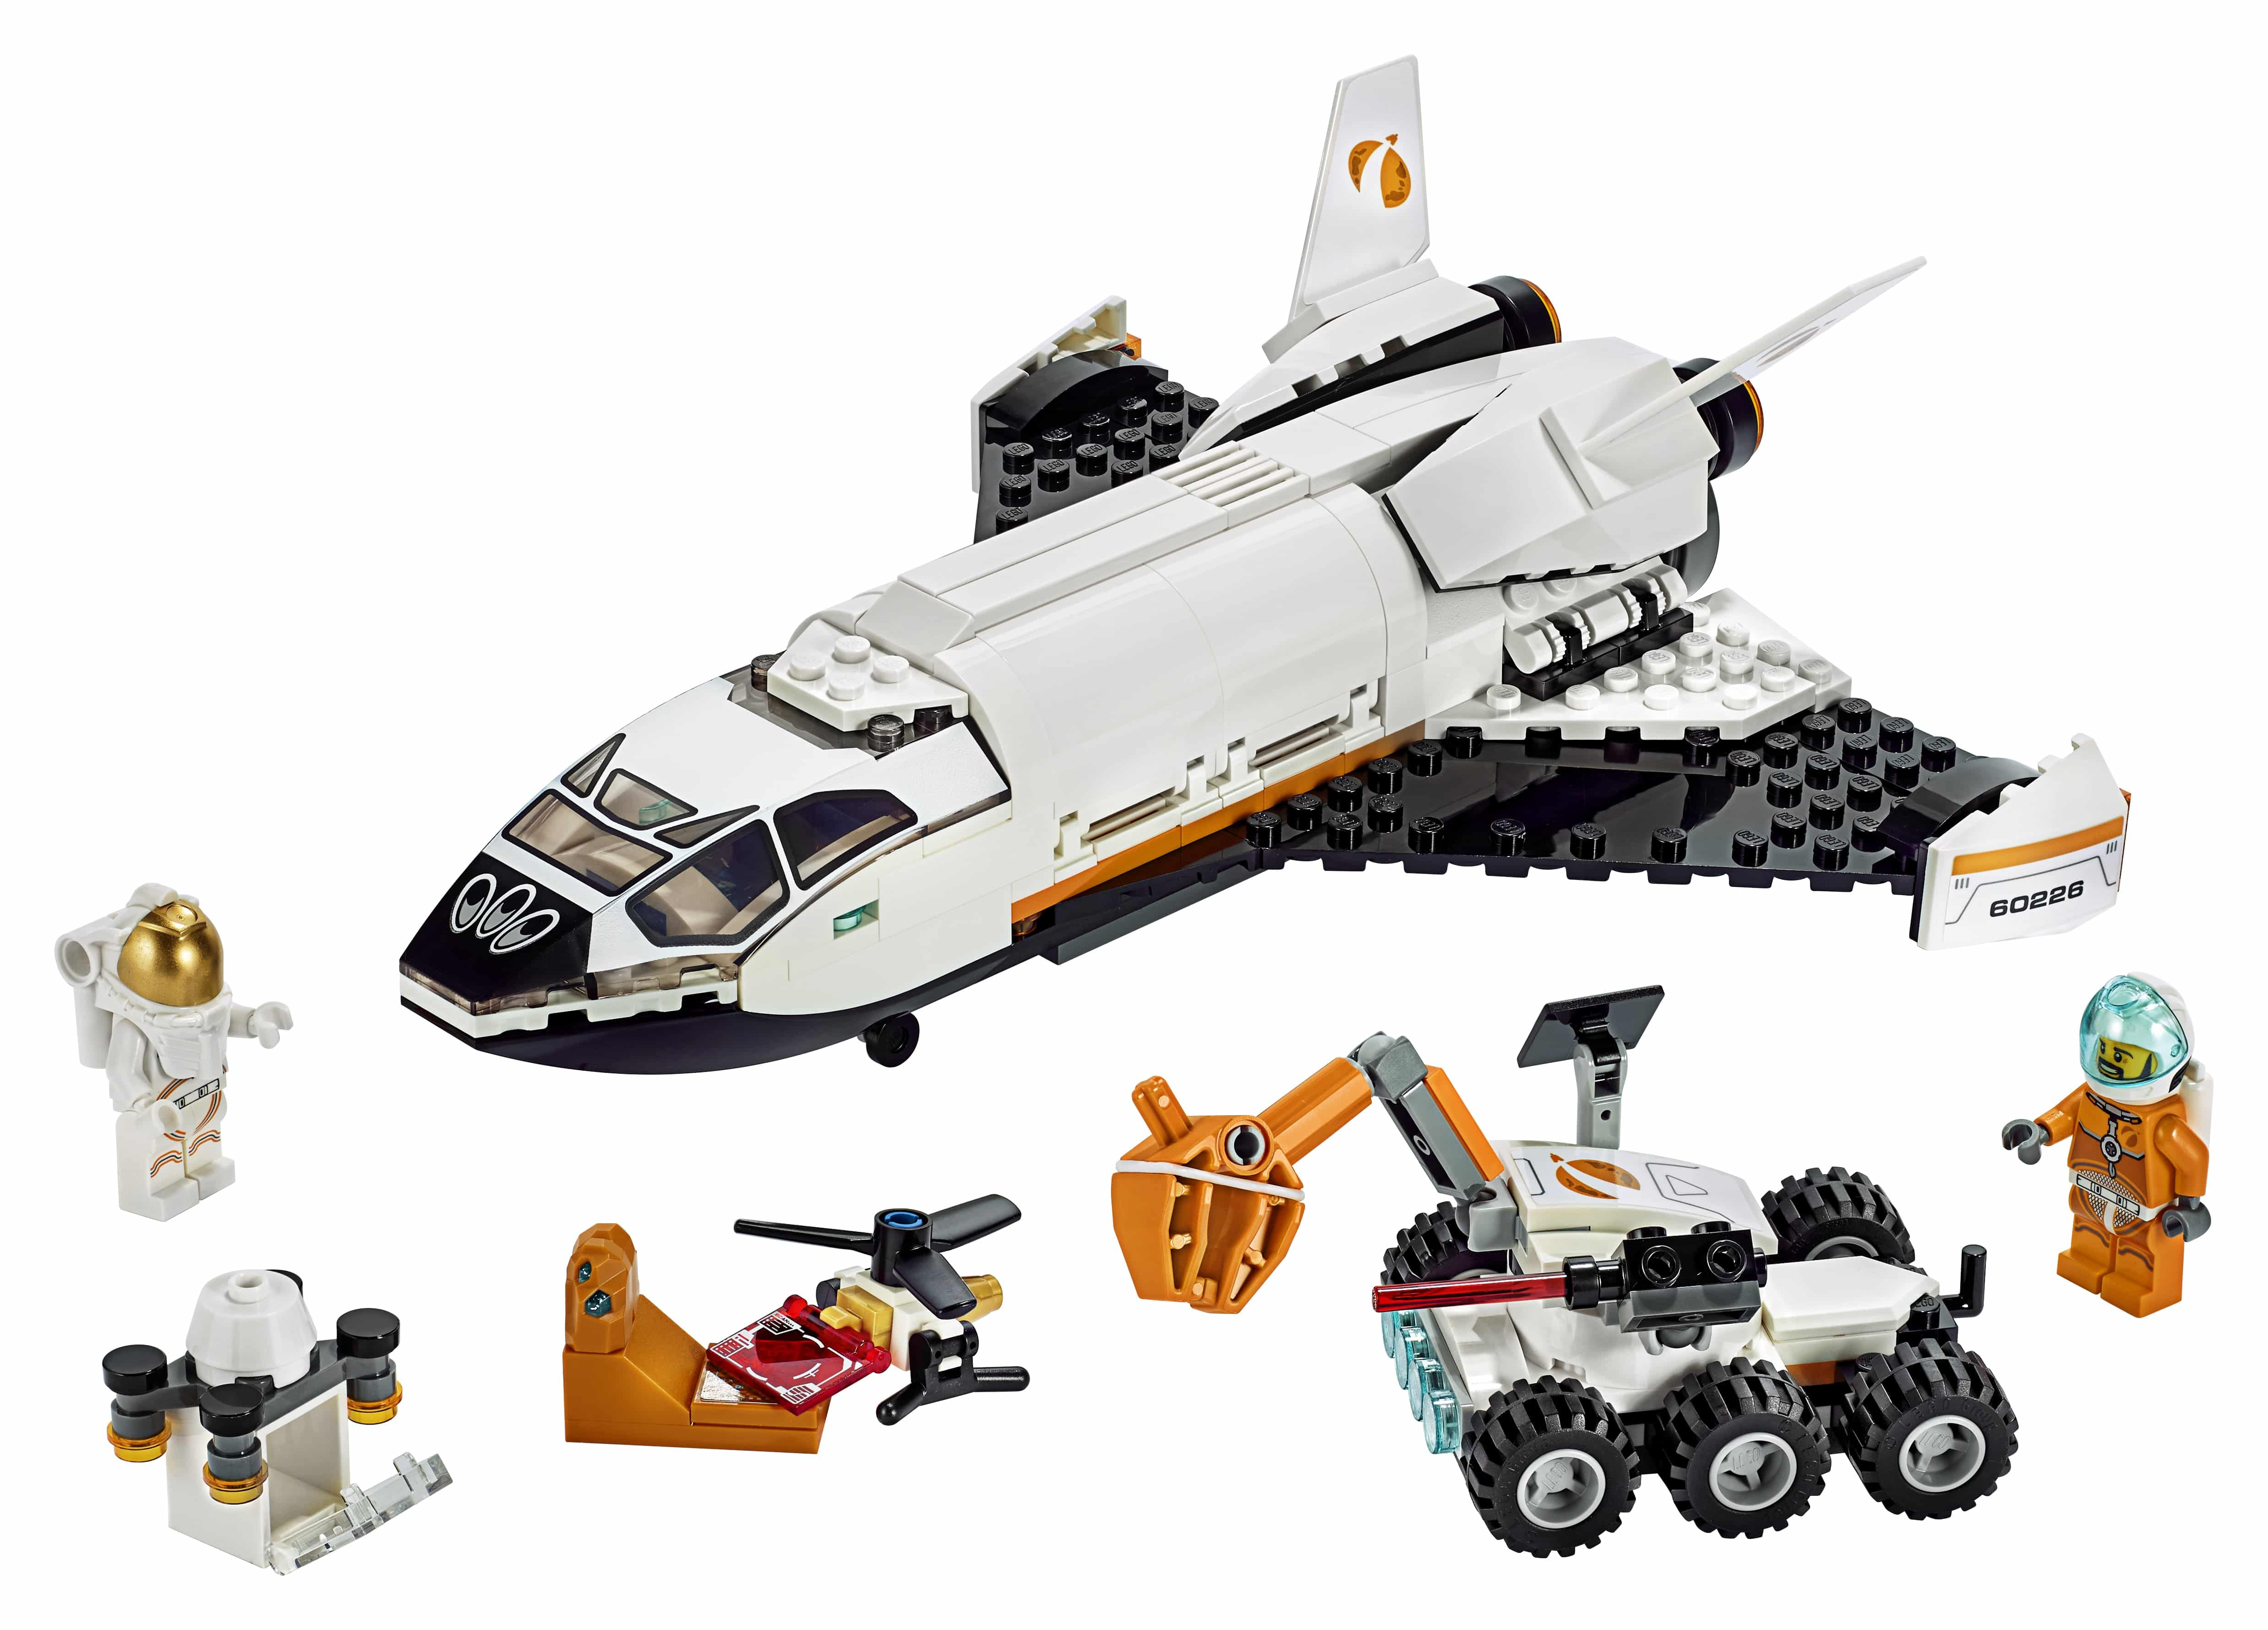 60226-City-Mars-Research-Shuttle